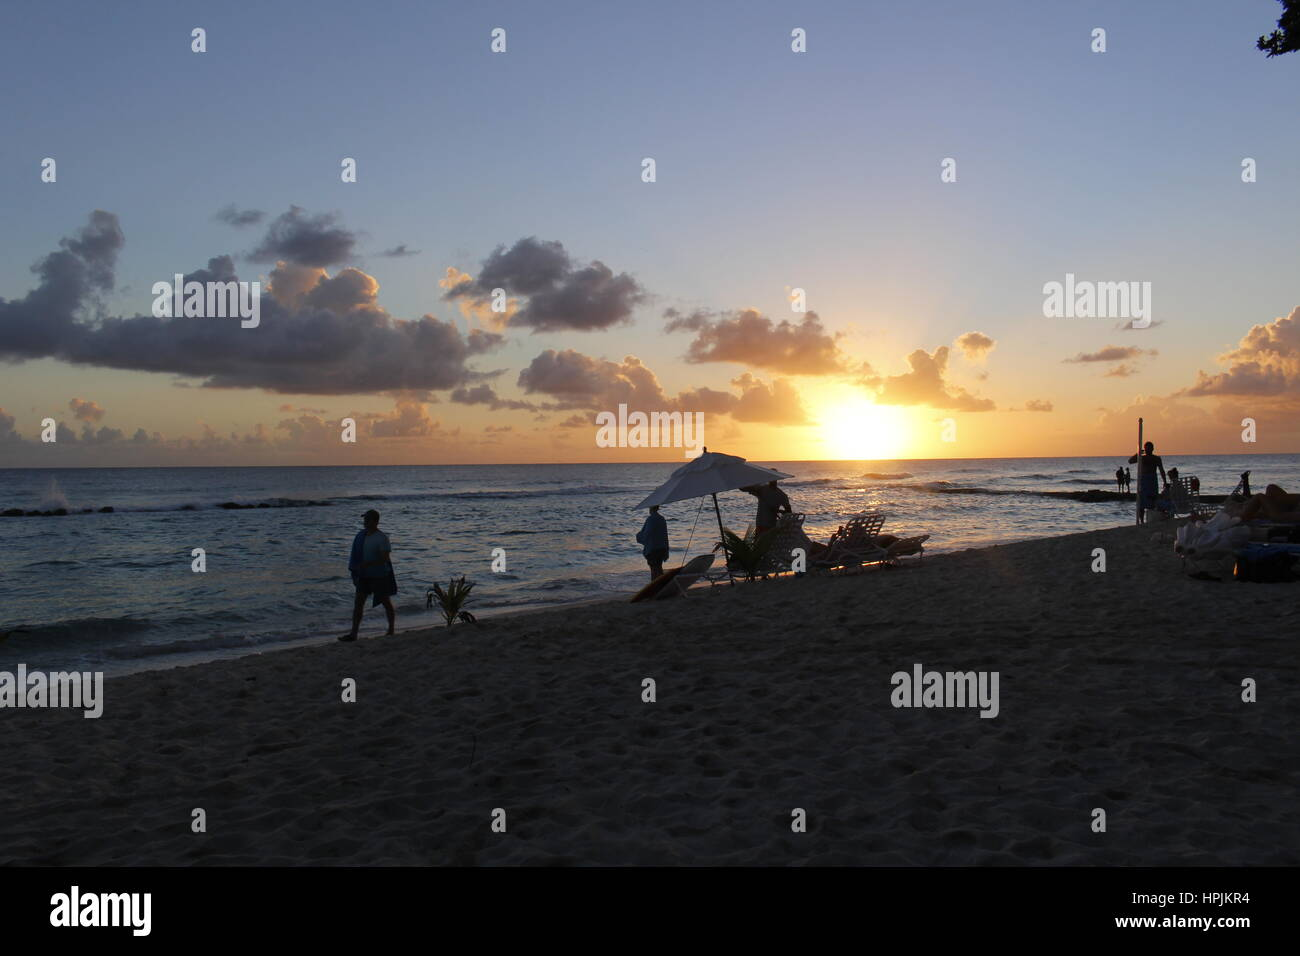 Silhouettes of people on the beach at sunset, Hasting, Barbados, Caribbean. - Stock Image